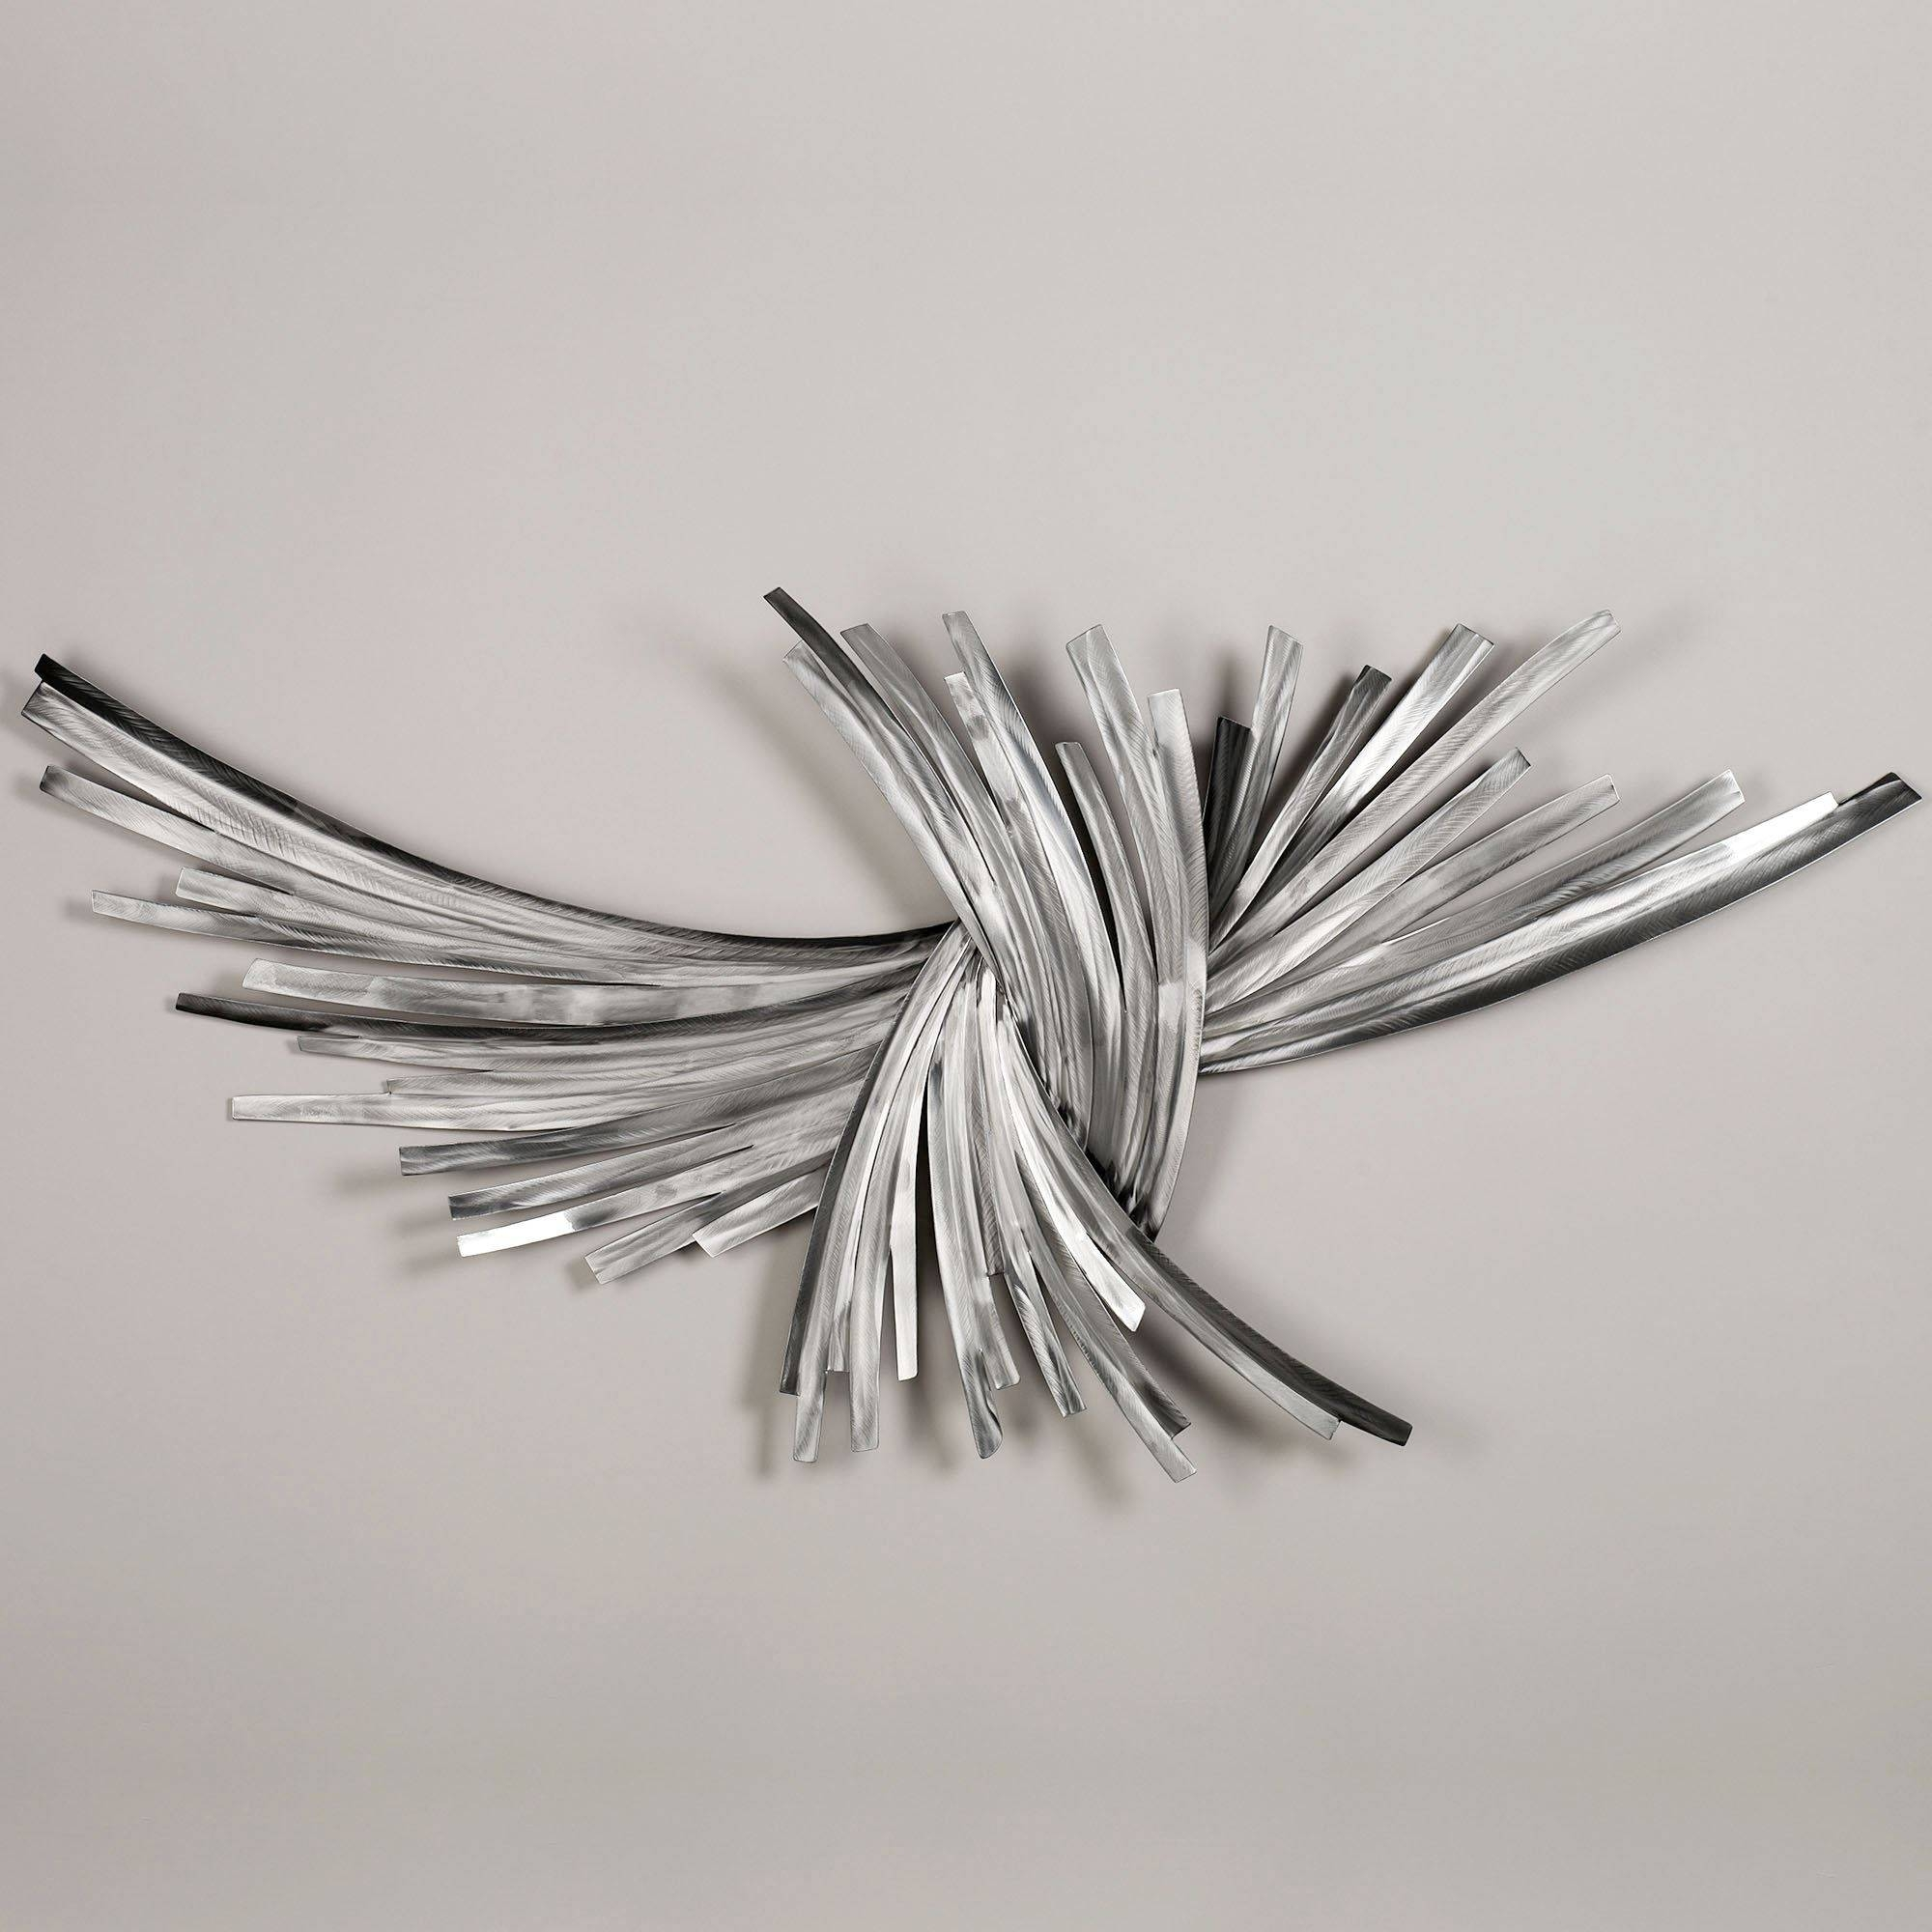 Infinity Silver Metal Wall Sculpture Pertaining To Most Current Silver Metal Wall Art (View 3 of 20)